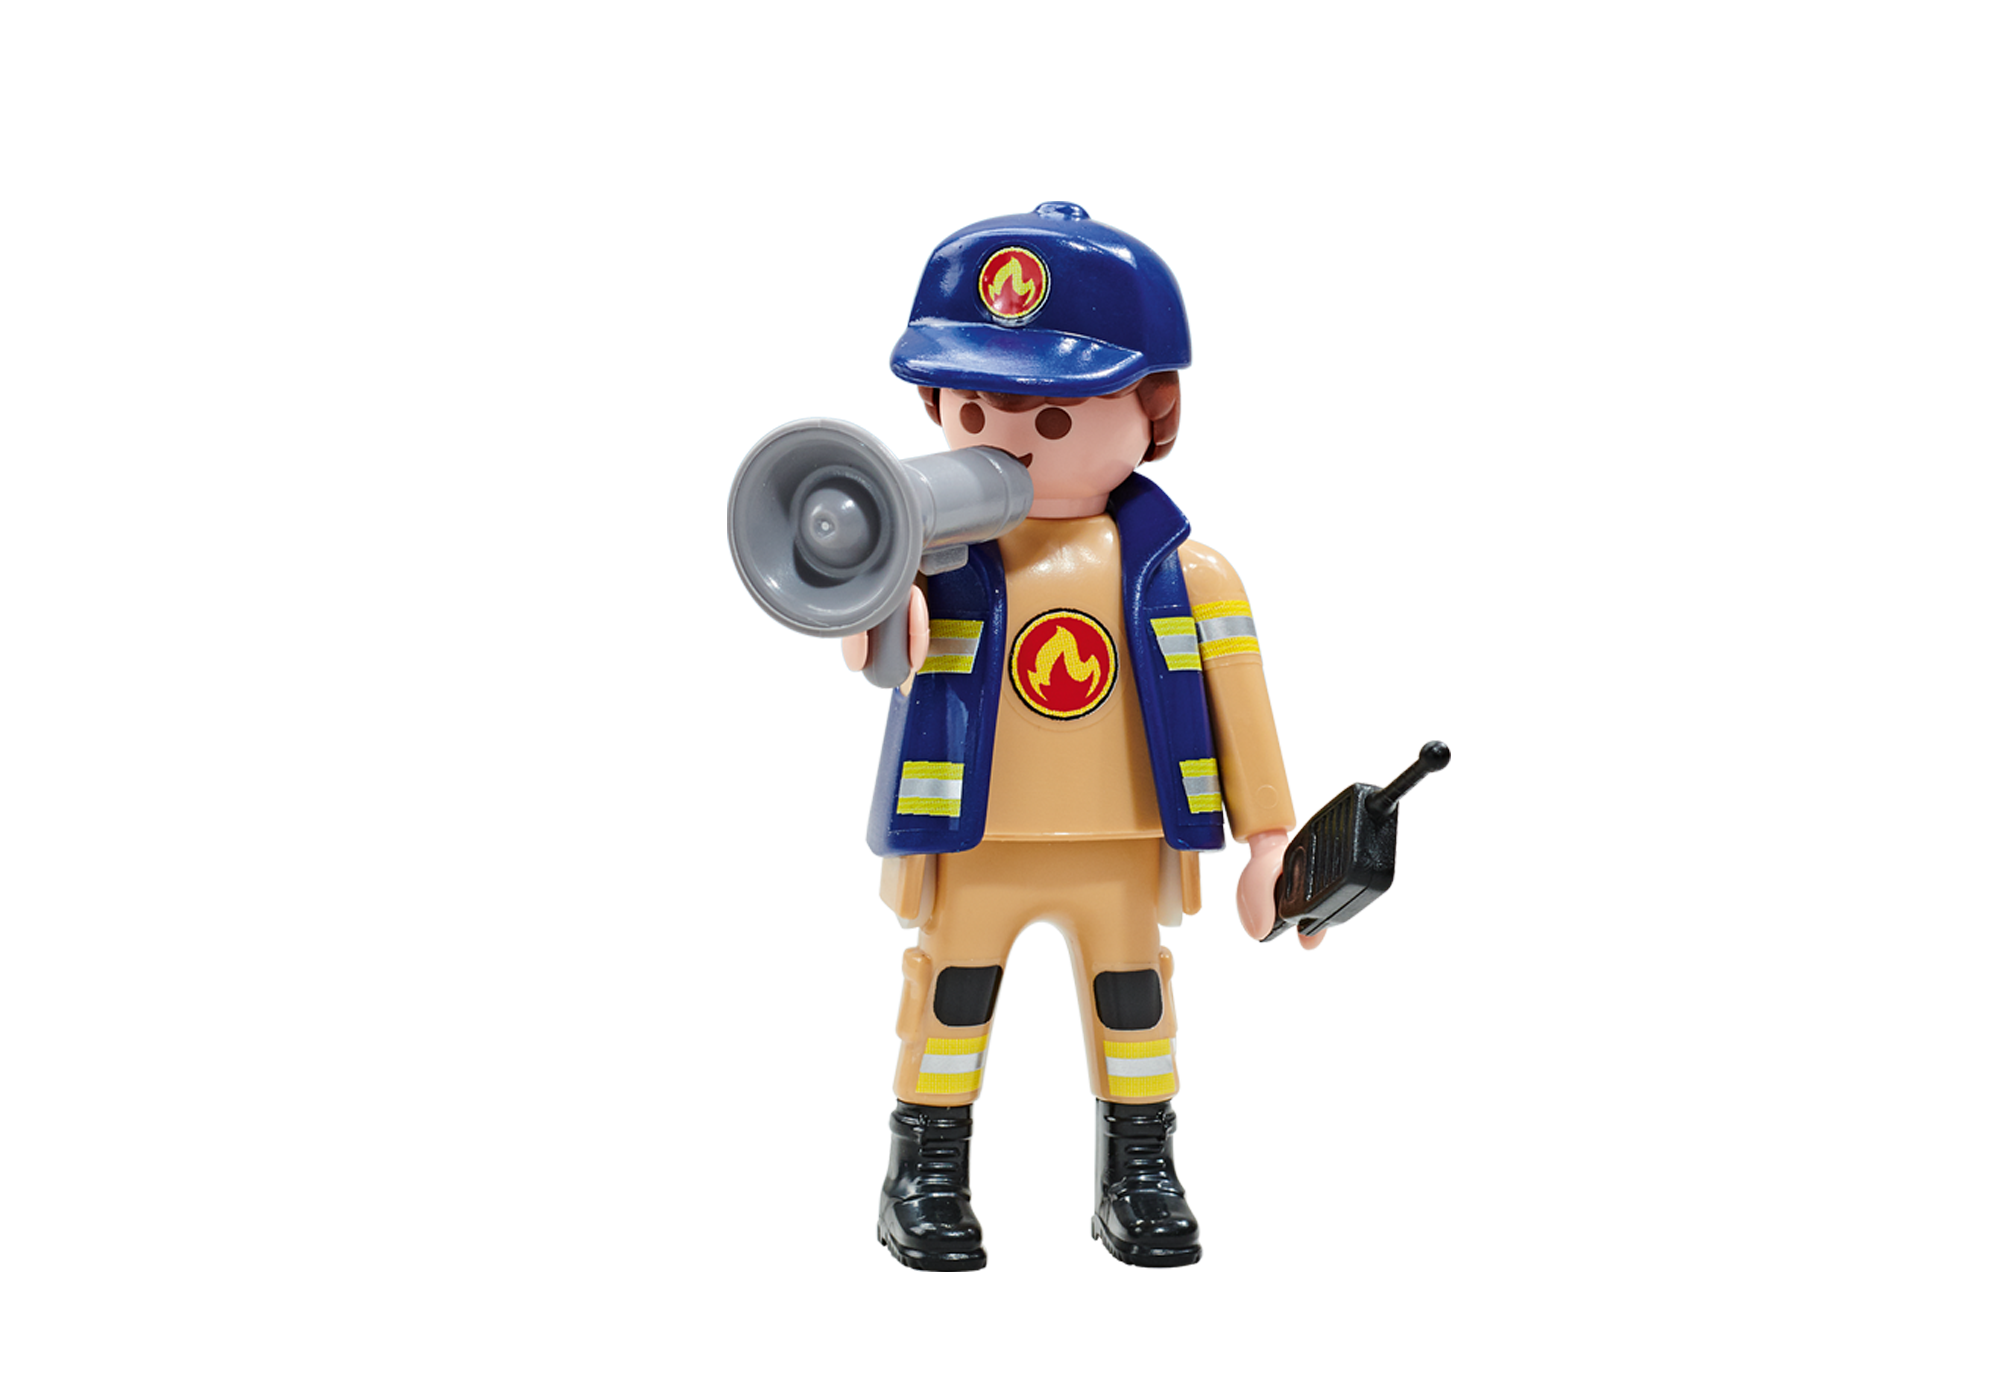 http://media.playmobil.com/i/playmobil/6583_product_detail/Fire Brigade A Captain